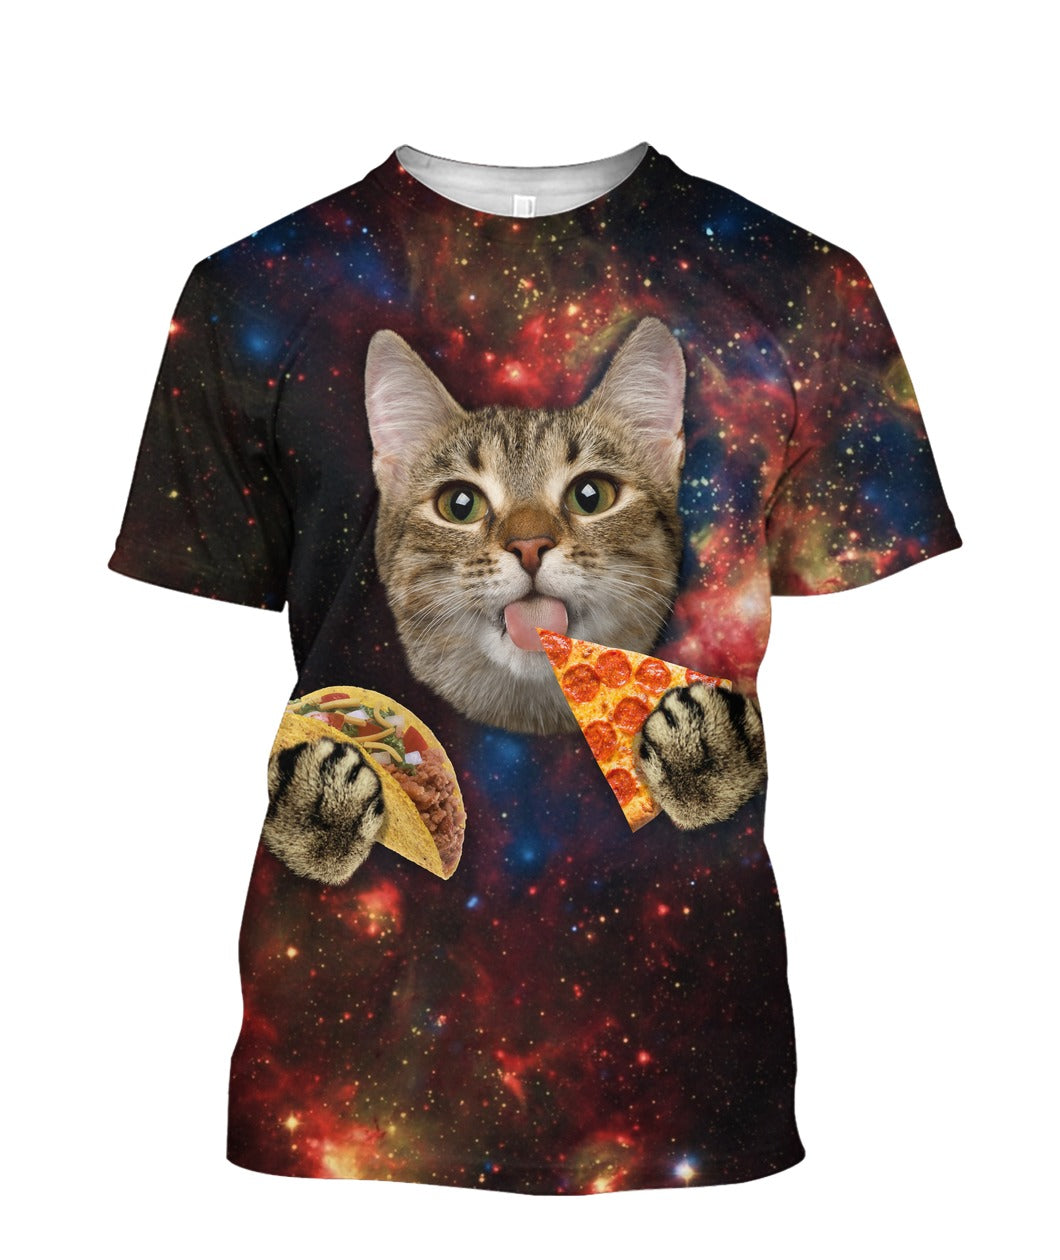 Cute Cat Eating Pizza 3D full print t-shirt